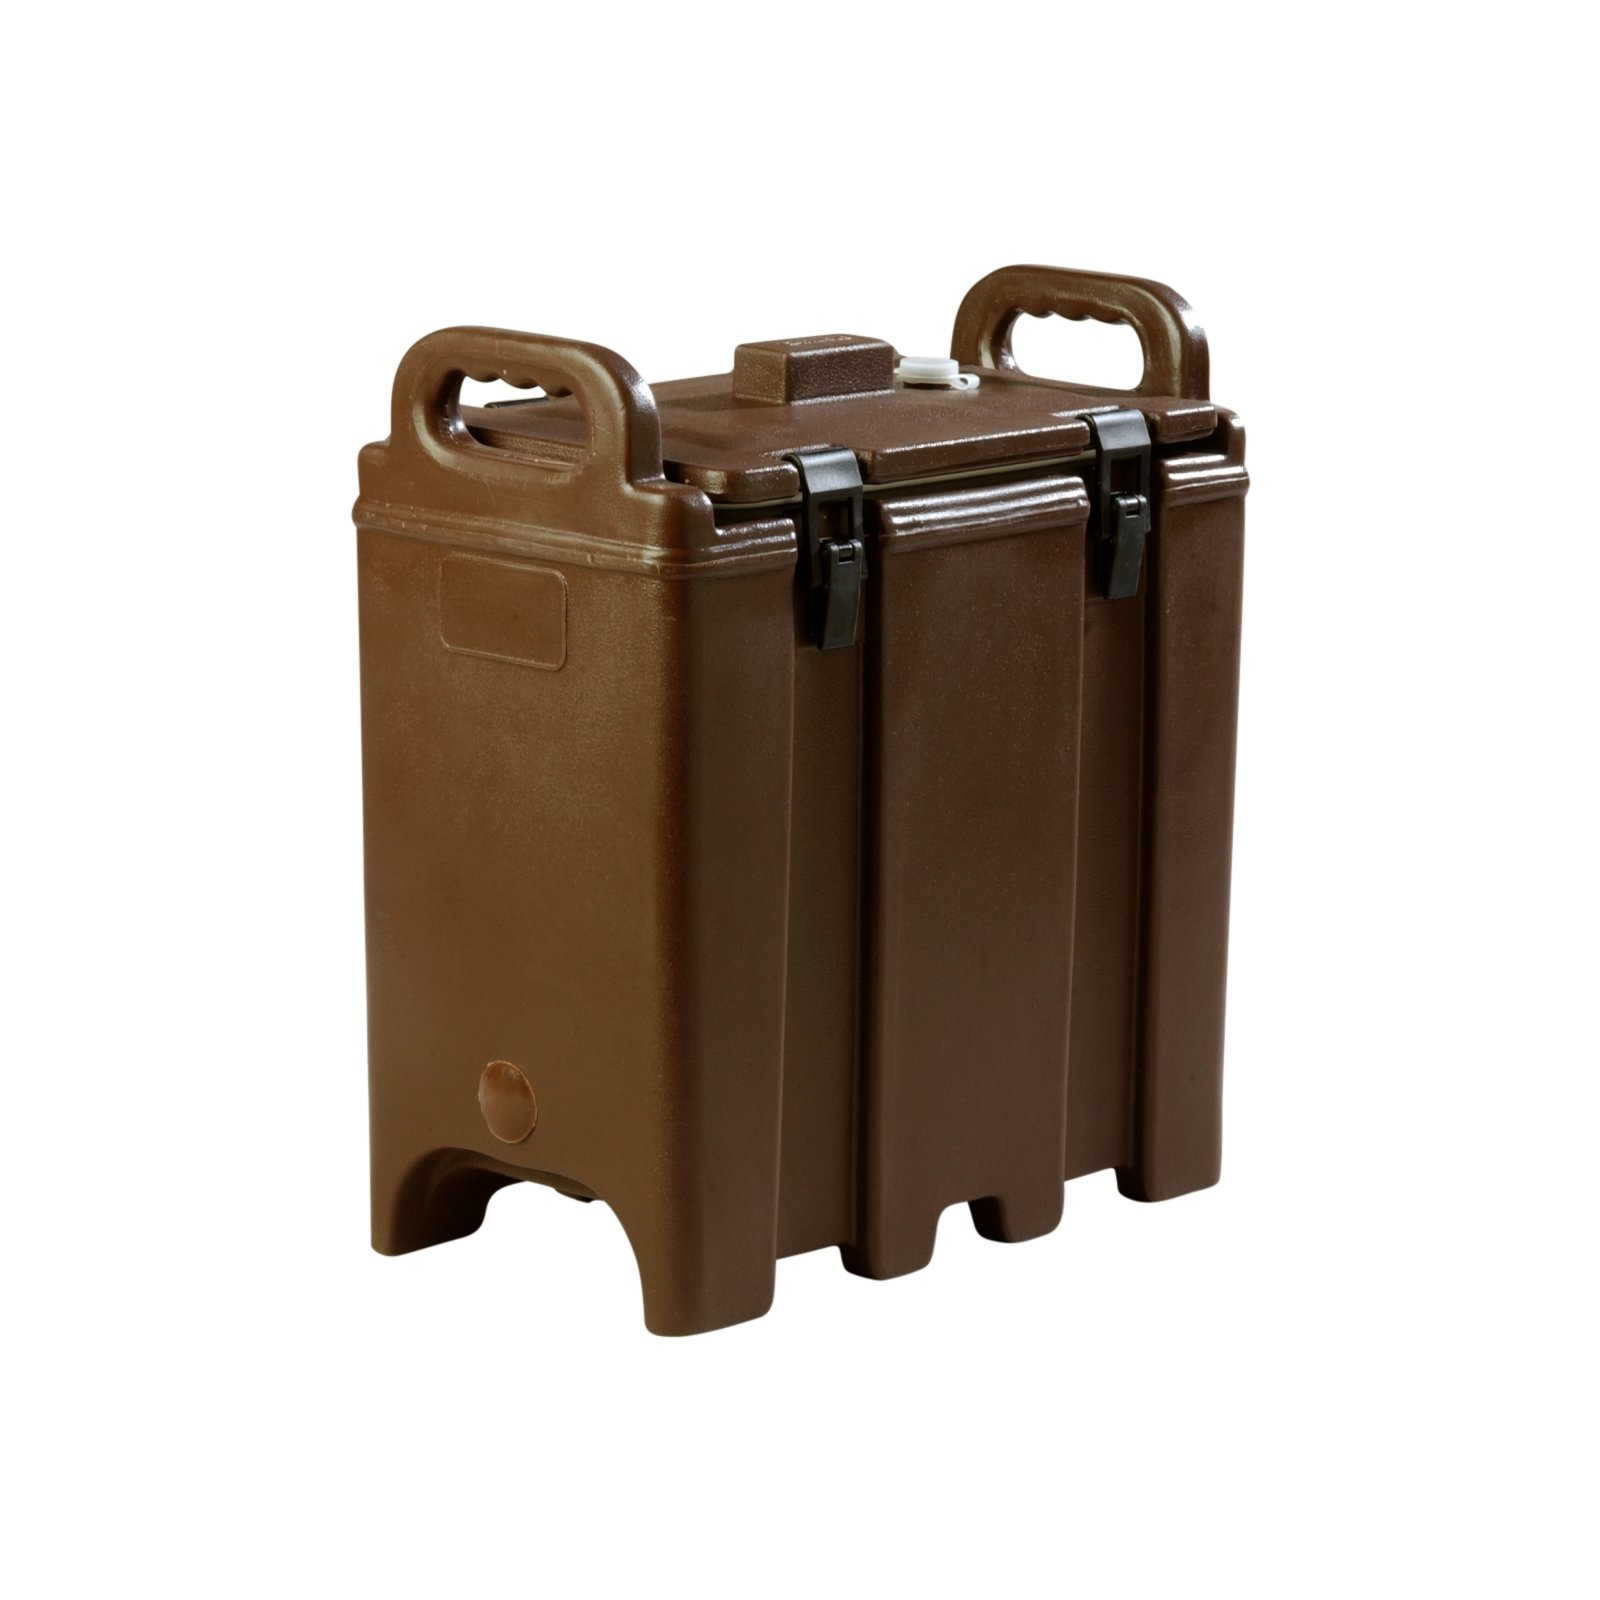 Ld350n01 Cateraide Soup And Chilli Server 3 5 Gal Brown Carlisle Foodservice Products